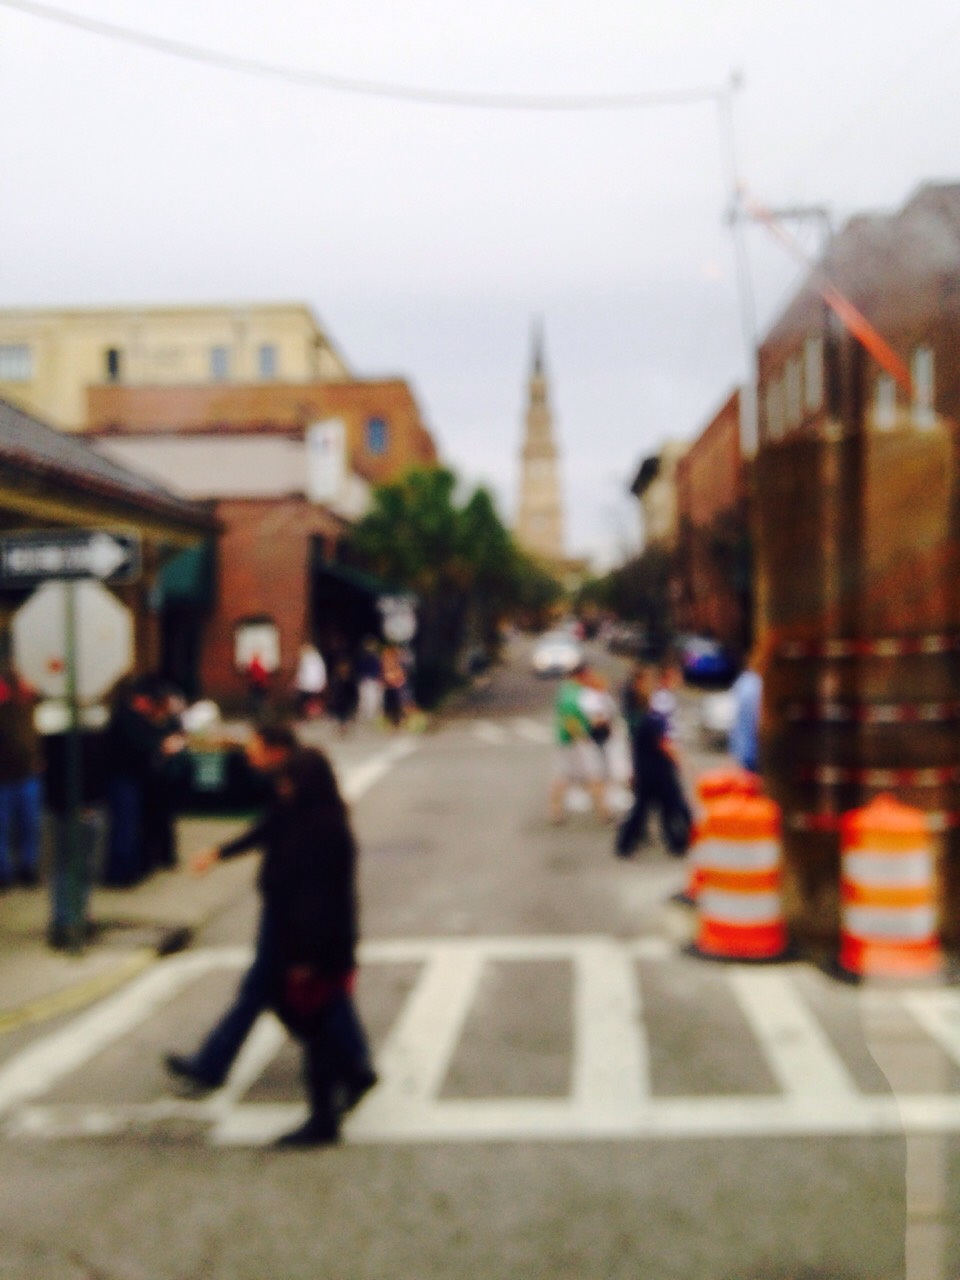 When taking a blurry picture, you want the photo to be focused while out of focus. This means that in a blurry pic, focus on one or two focal points. It will give more meaning to the picture. In my photo, I focused on the church and the people closest to the camera.